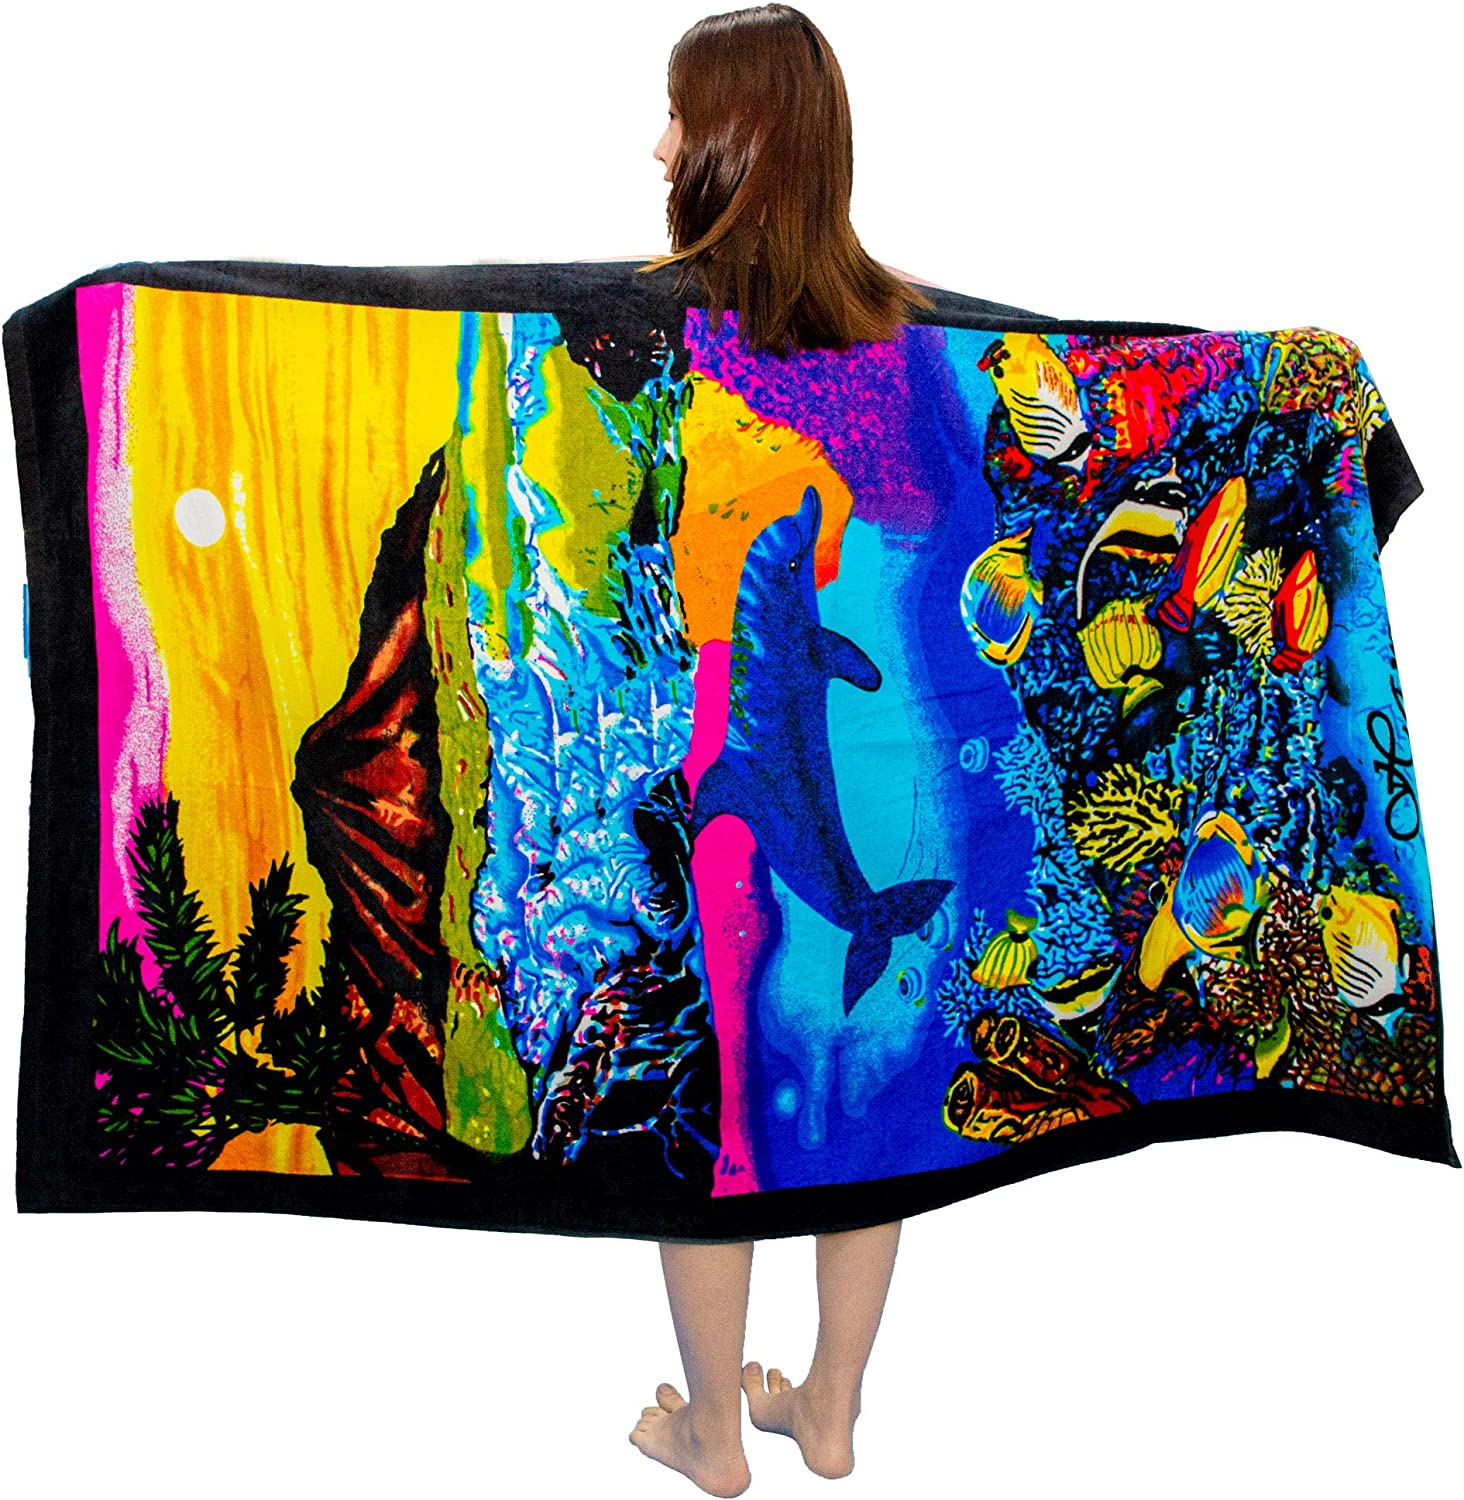 """VNICGFOMGT Bath Towel 100% Pure Cotton Soft Tropical Hawaiian Beach Blanket 71""""x41"""" for Adults Swimming Surfing Spa Diving Decor, Ocean Carnival"""